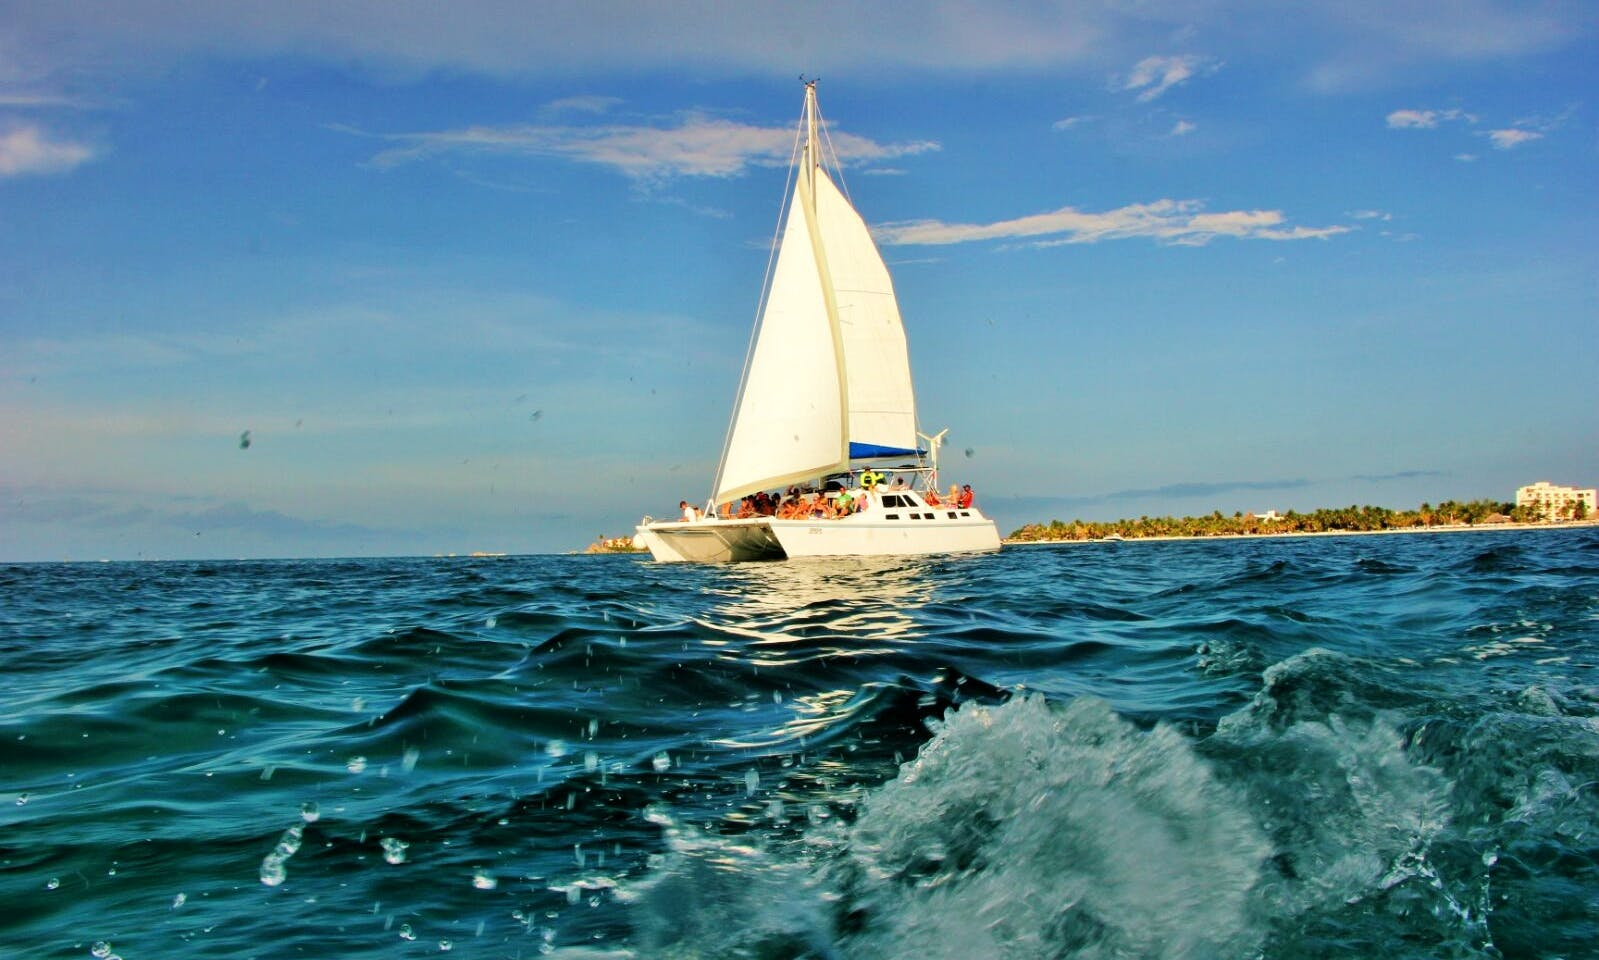 Lite Tour to Isla Mujeres (shared basis) 12:30 to 5:00 pm